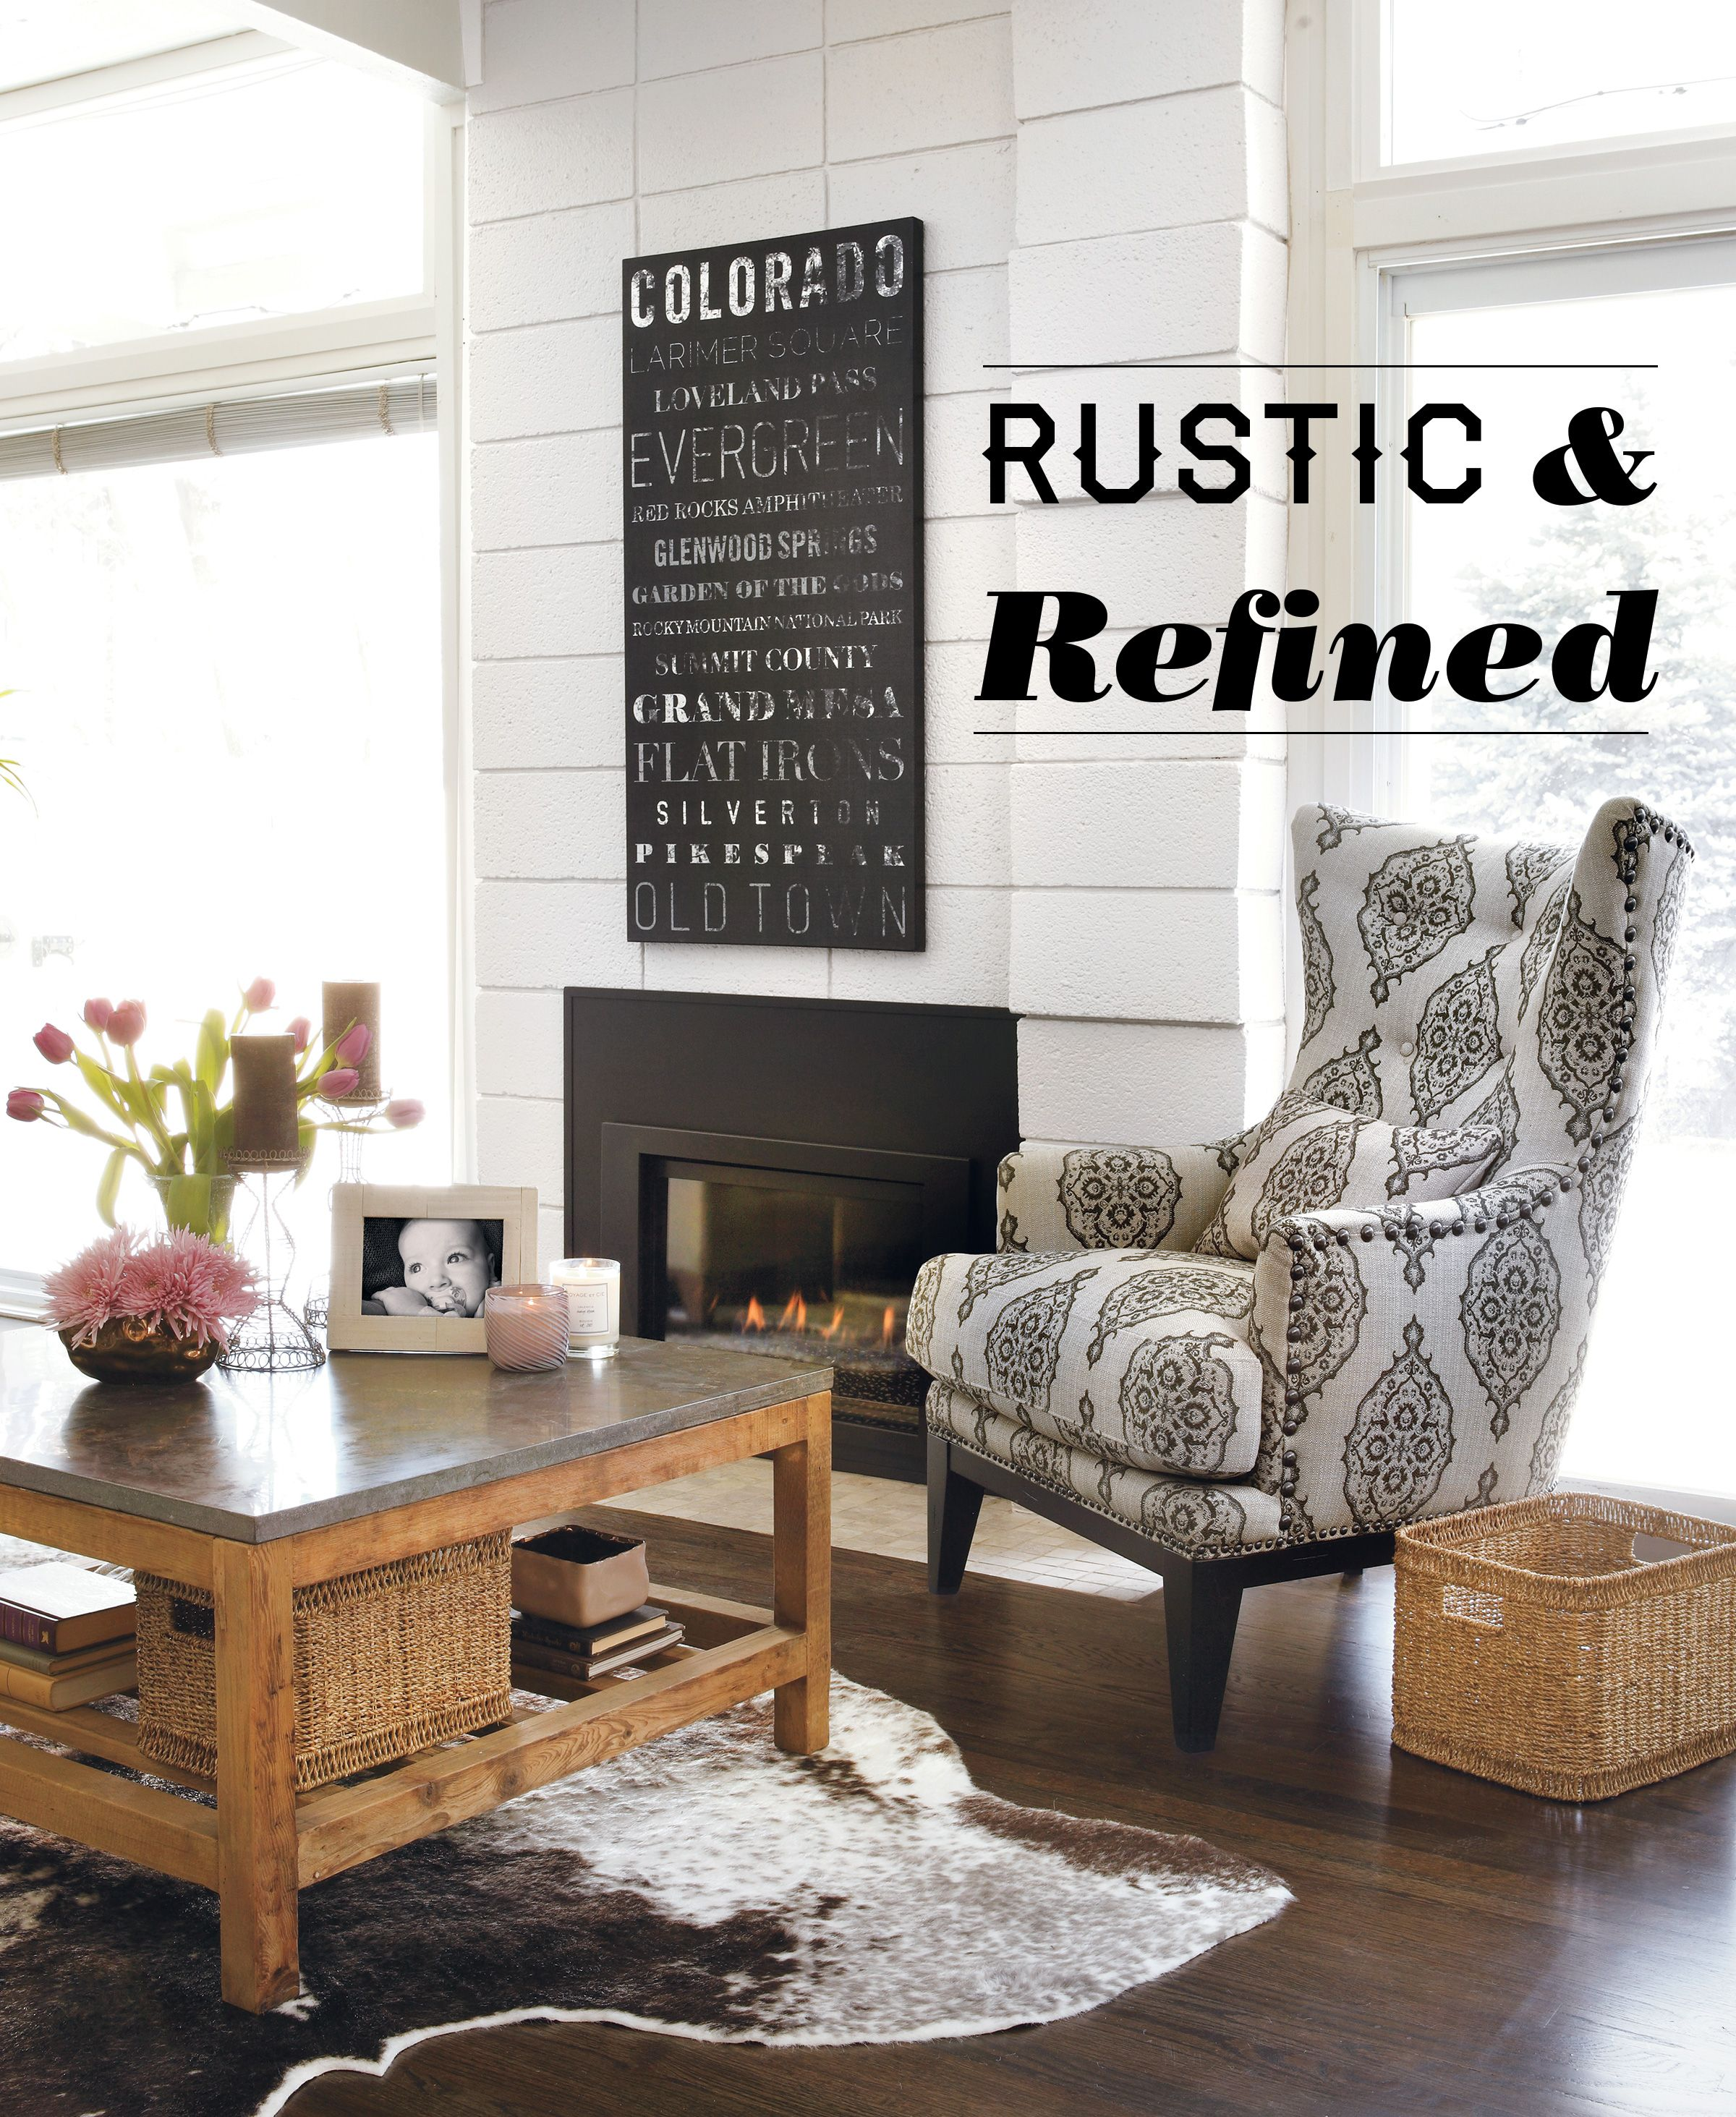 Home Decor Rustic And Refined Home Home Is Here Home Decor Rustic Decor Decor